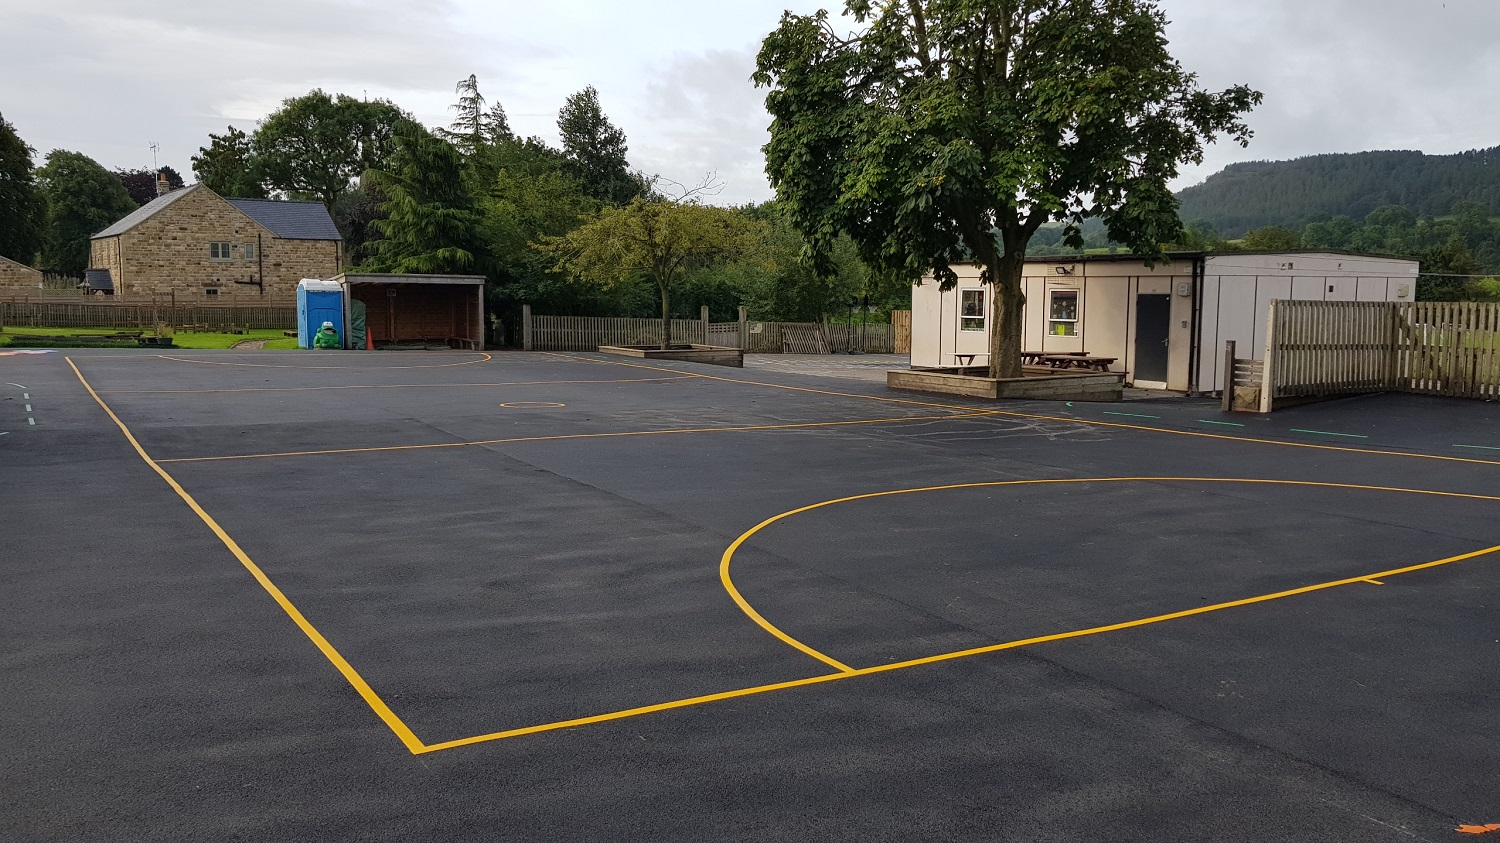 P4 Sports Court Tarmac Surfacing & Sports Court Markings at Ashover Primary School in Ashover